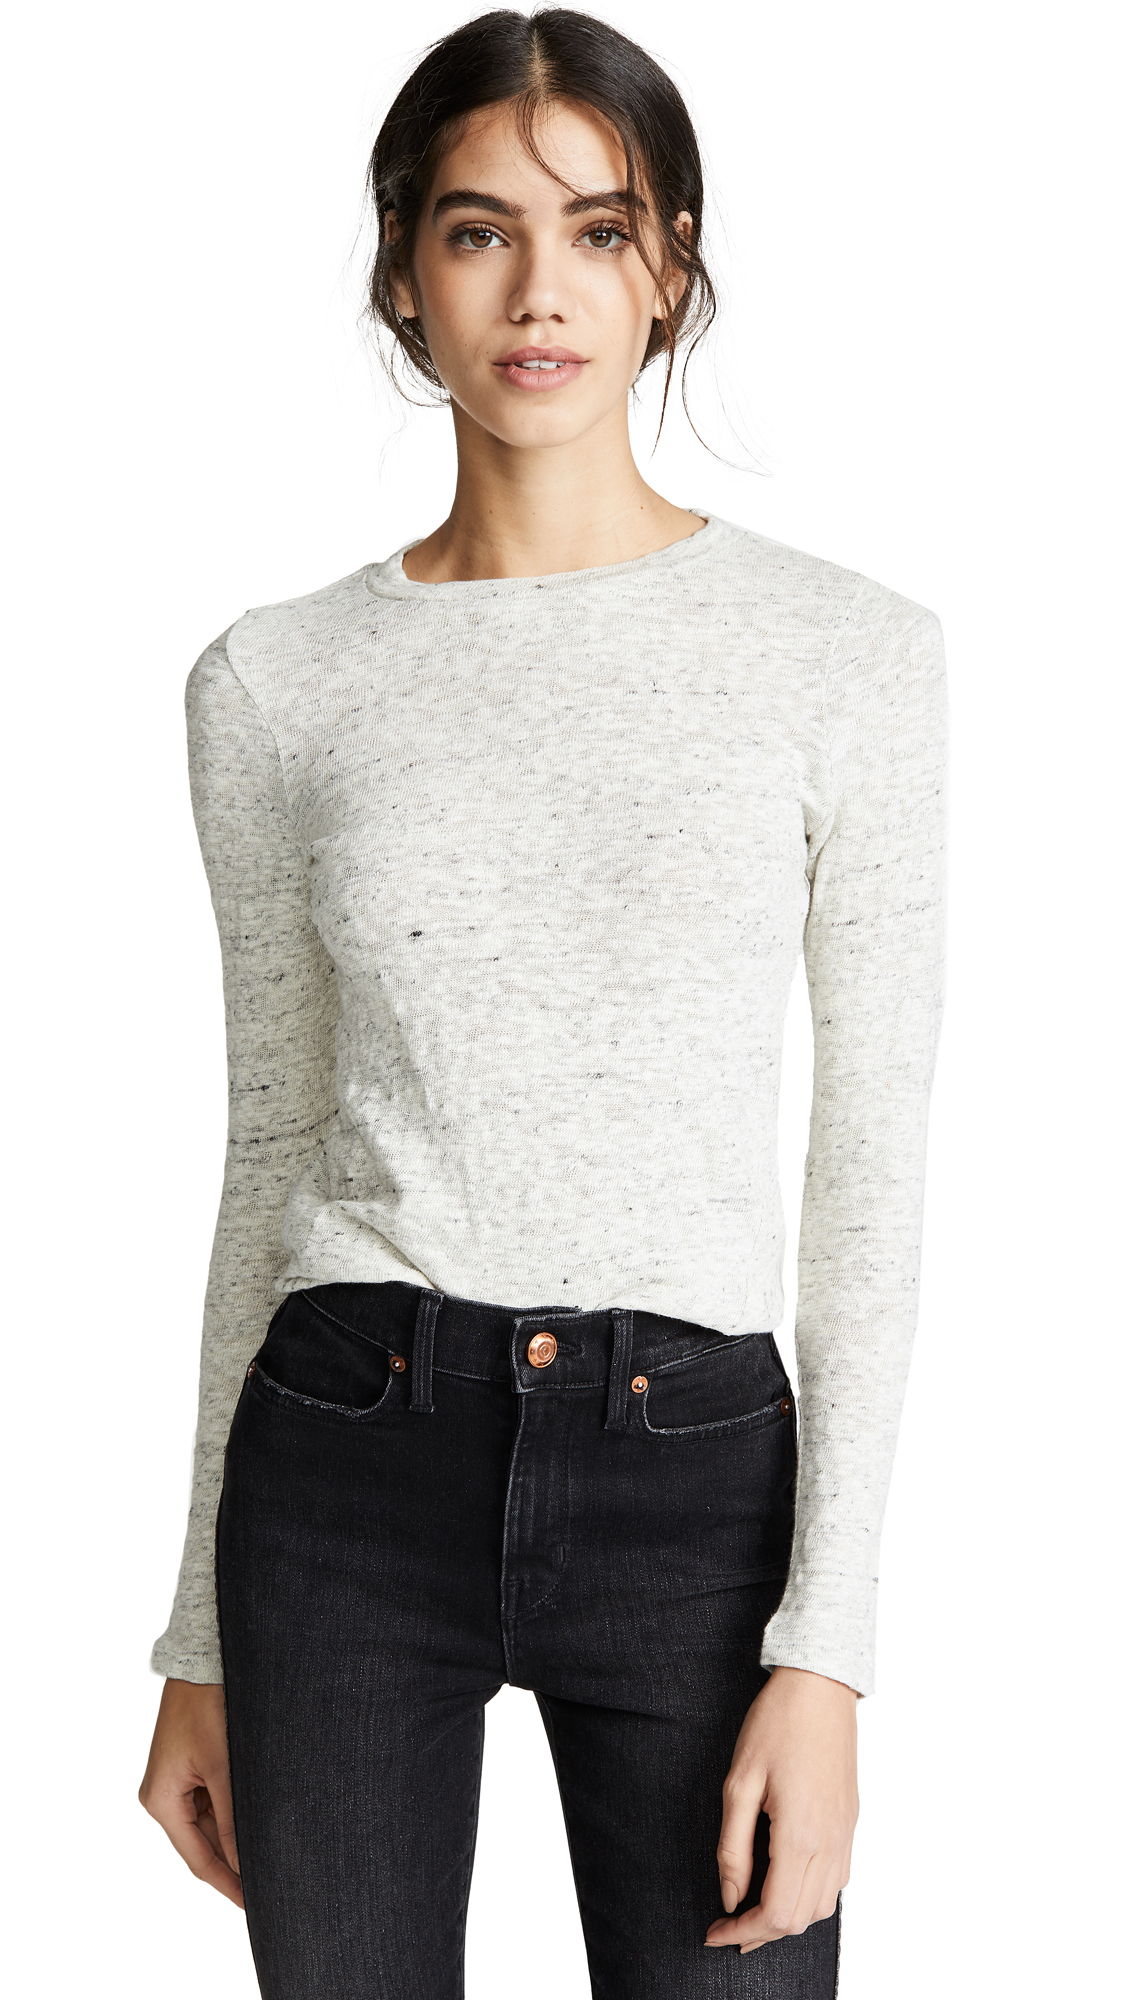 AYR Later Skater Knit Top in Flurry Knit